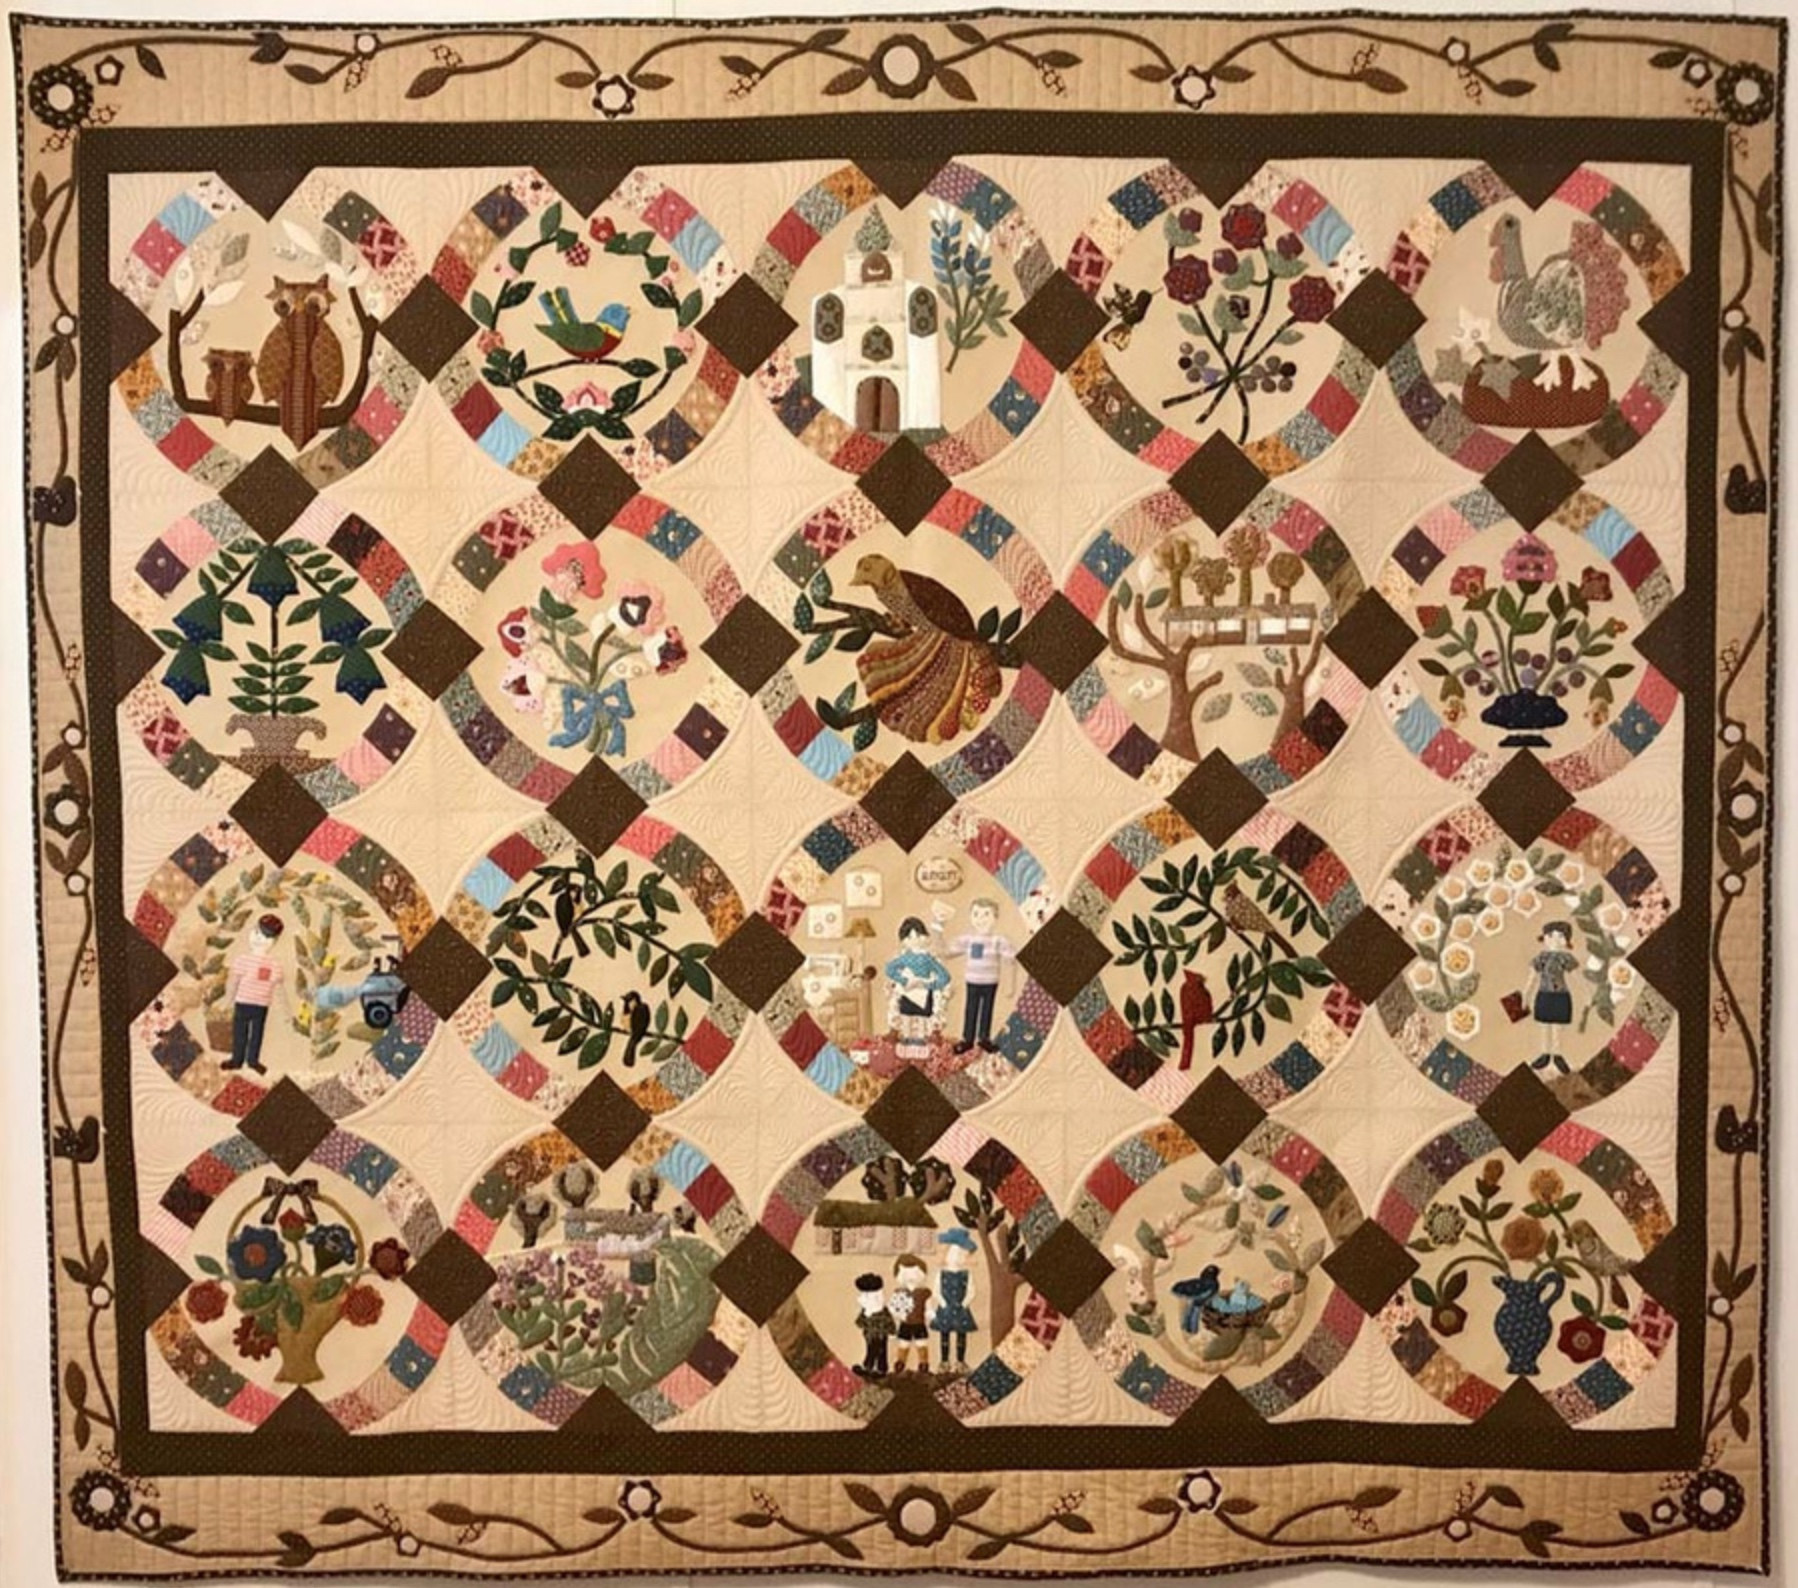 Richland Oaks by Mel Dugosh (Photo from Mancuso 2021 Spring Quilt Festival website)